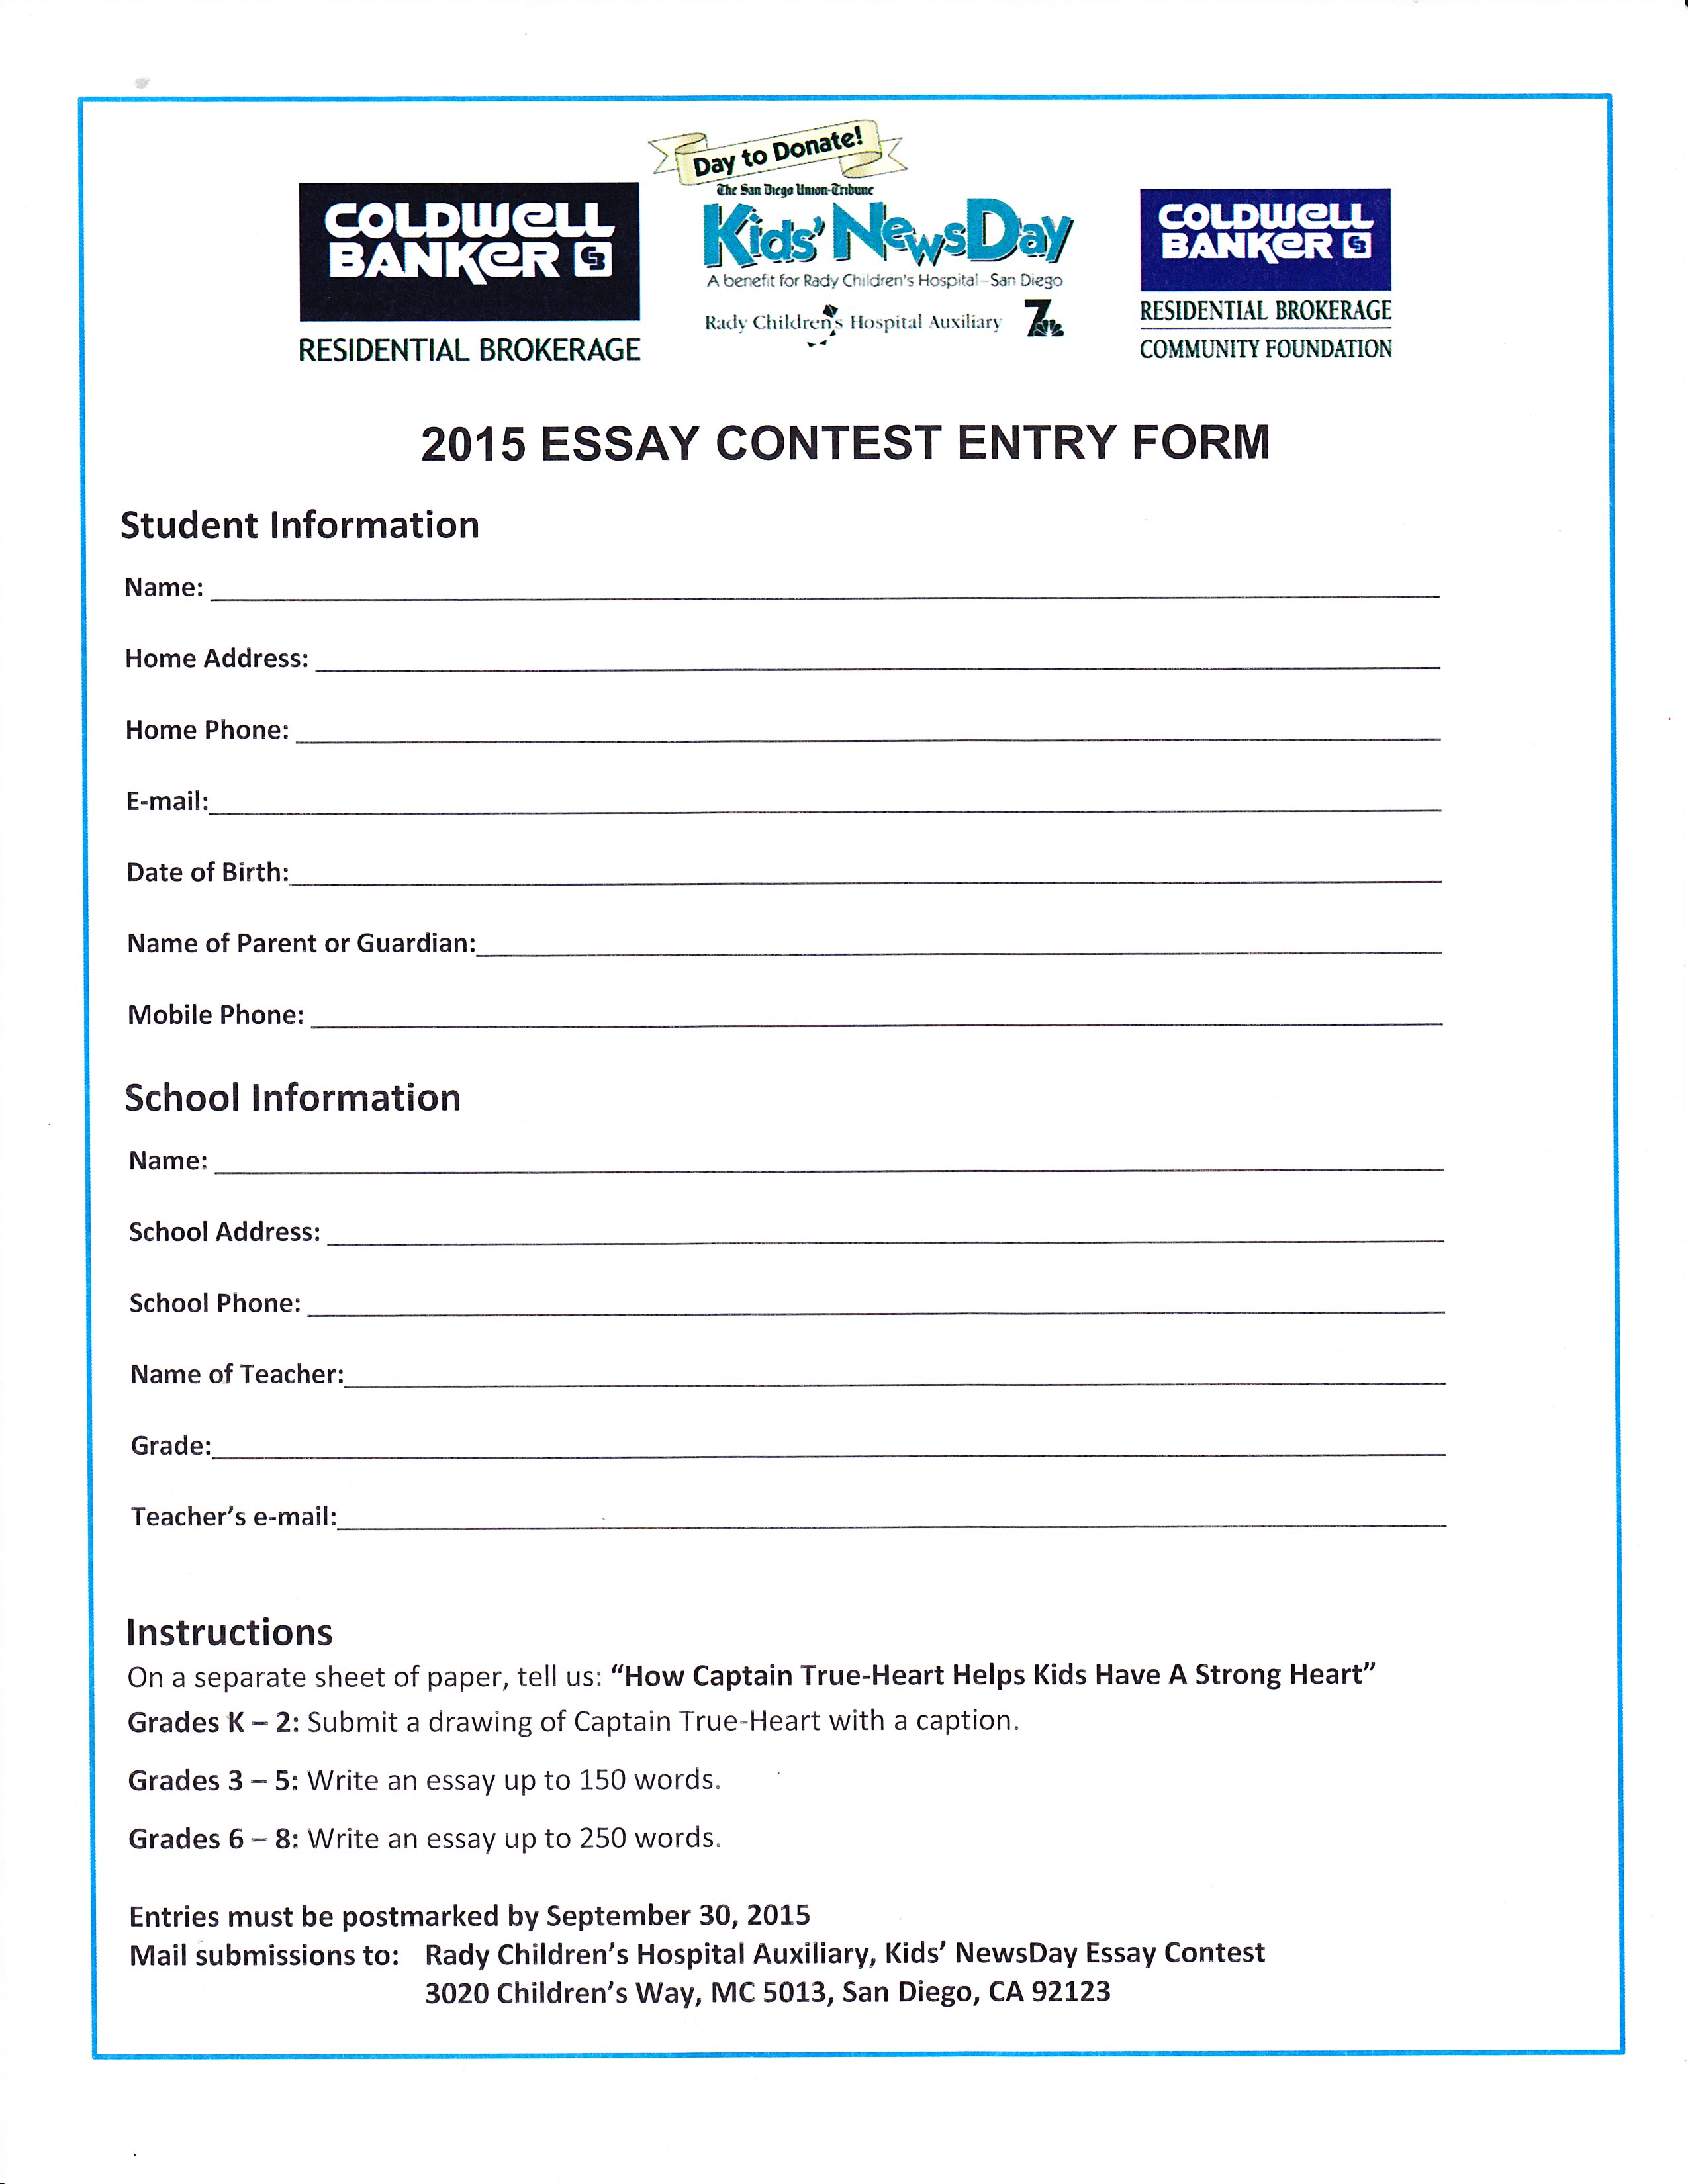 kids news day essay writing contest due sept th huskies  scn 0097